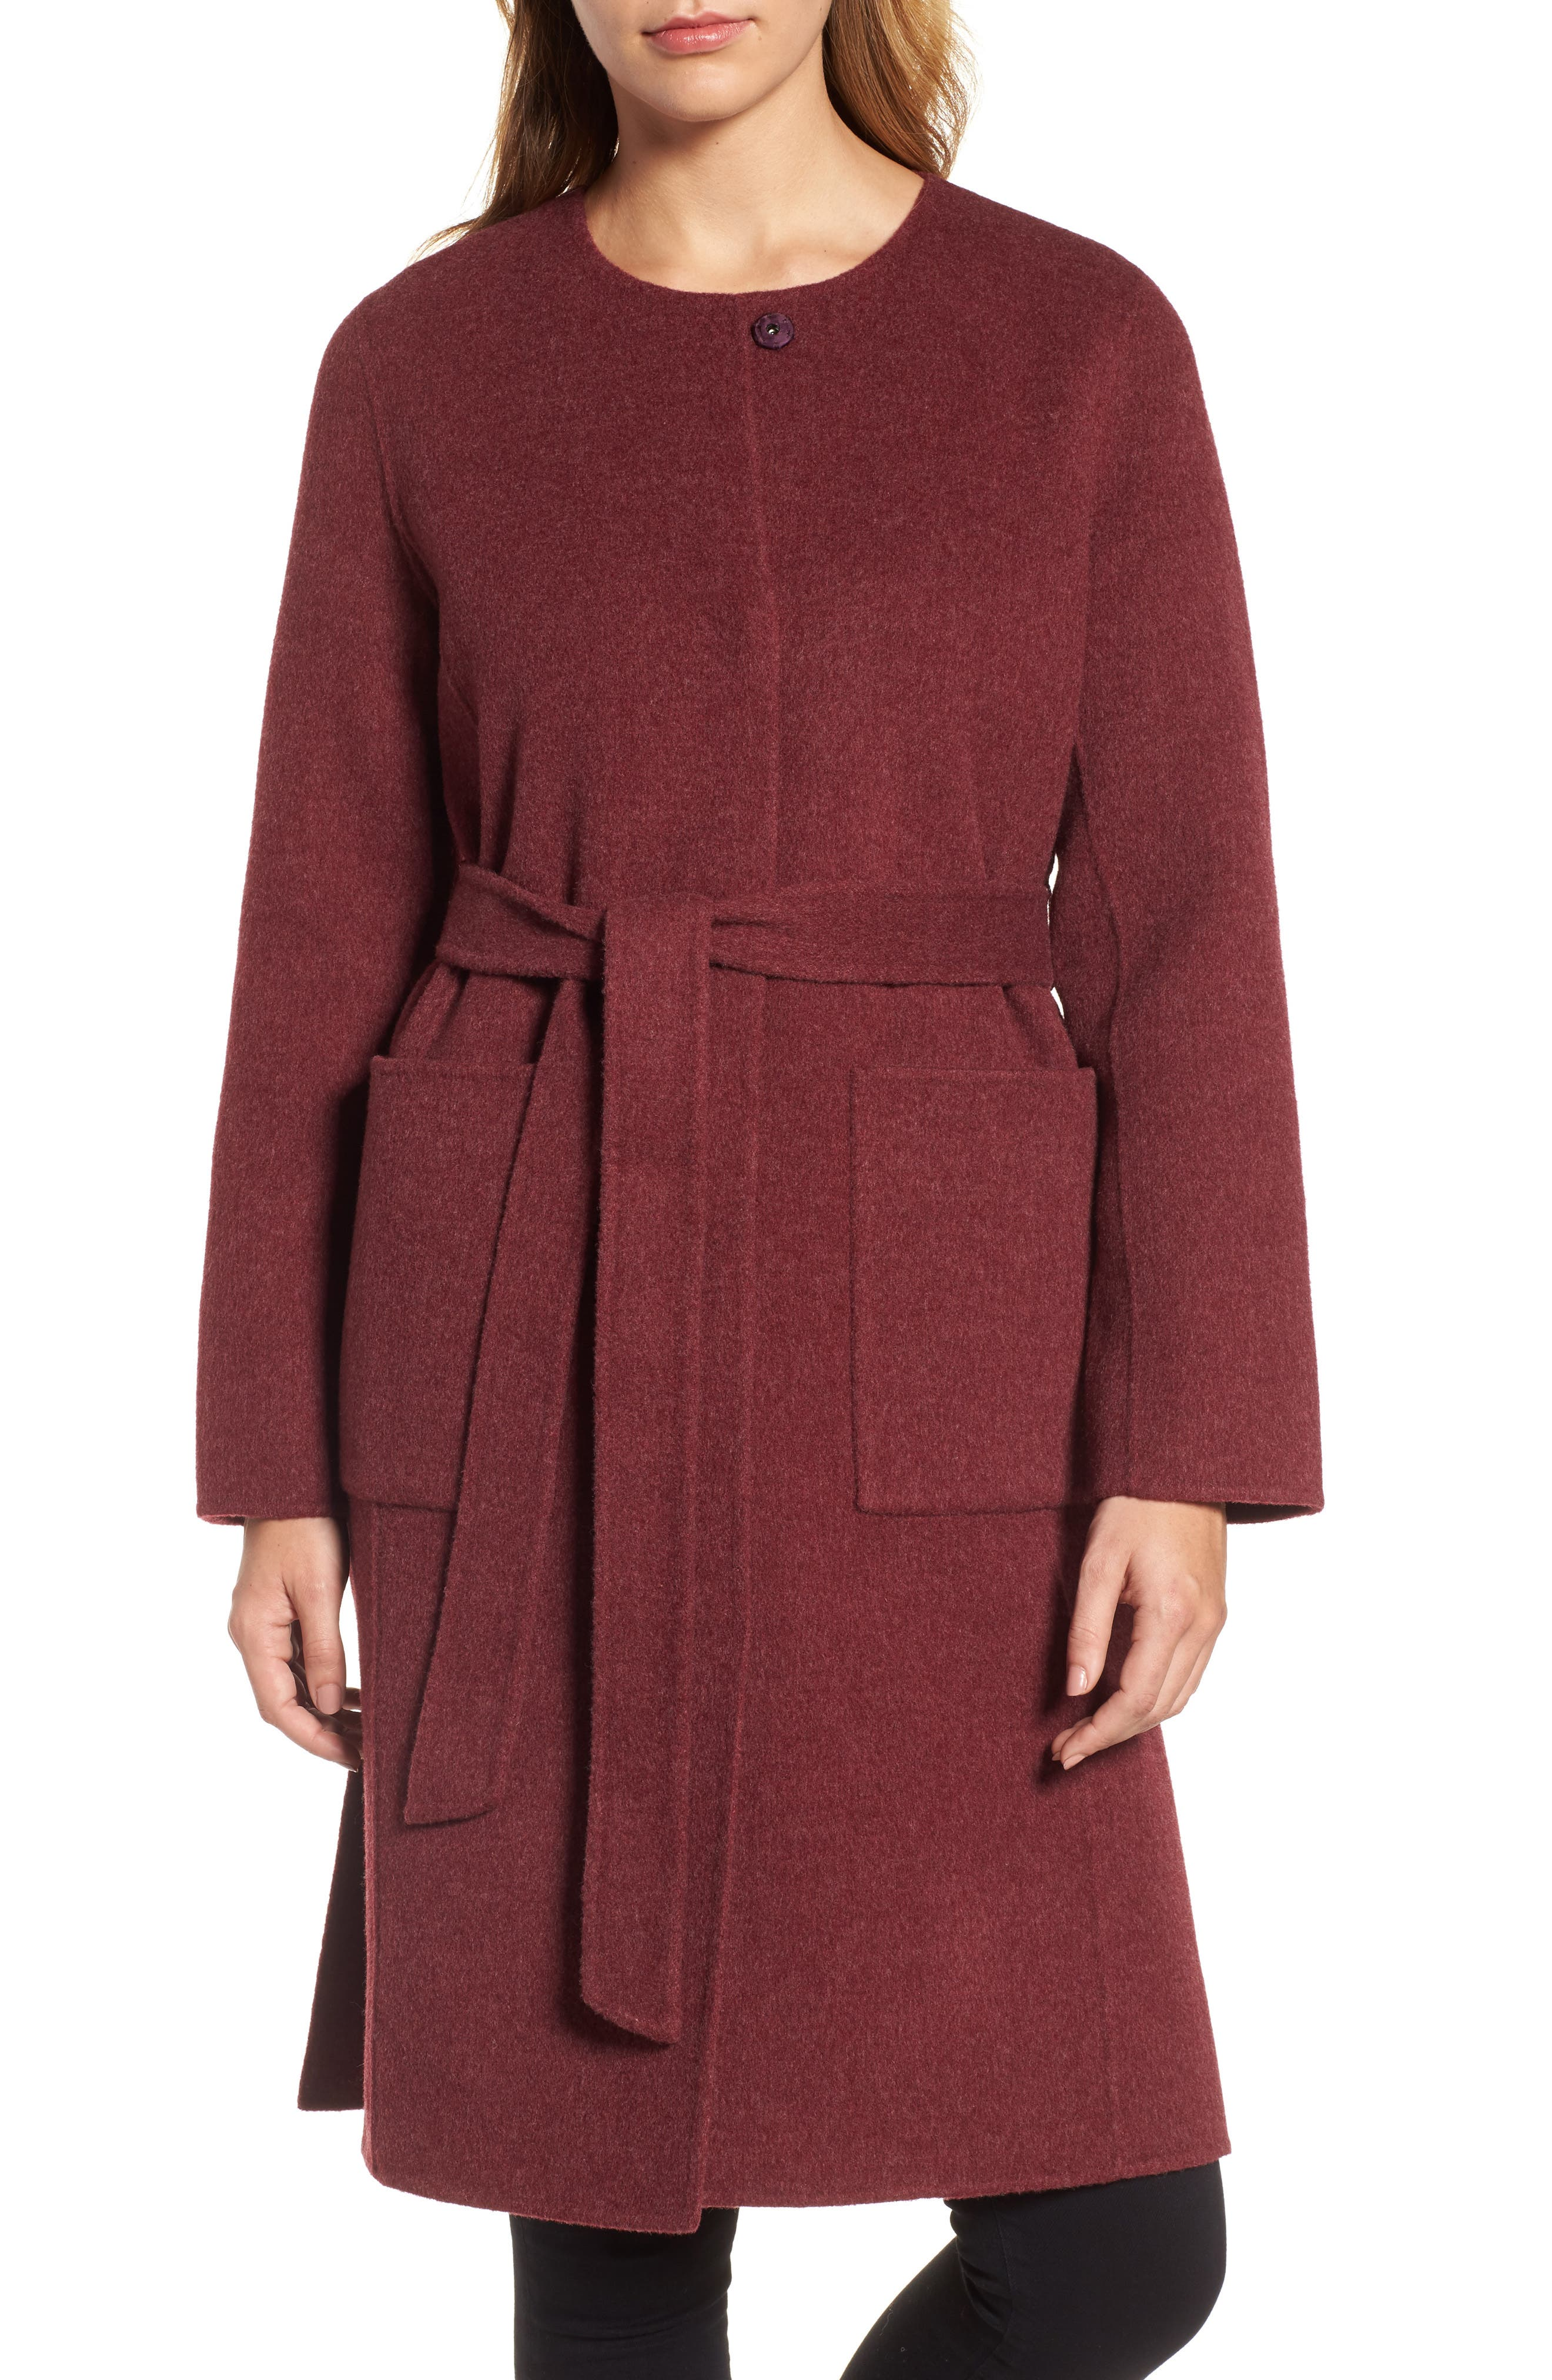 Alternate Image 1 Selected - Eileen Fisher Boiled Wool Blend Wrap Coat